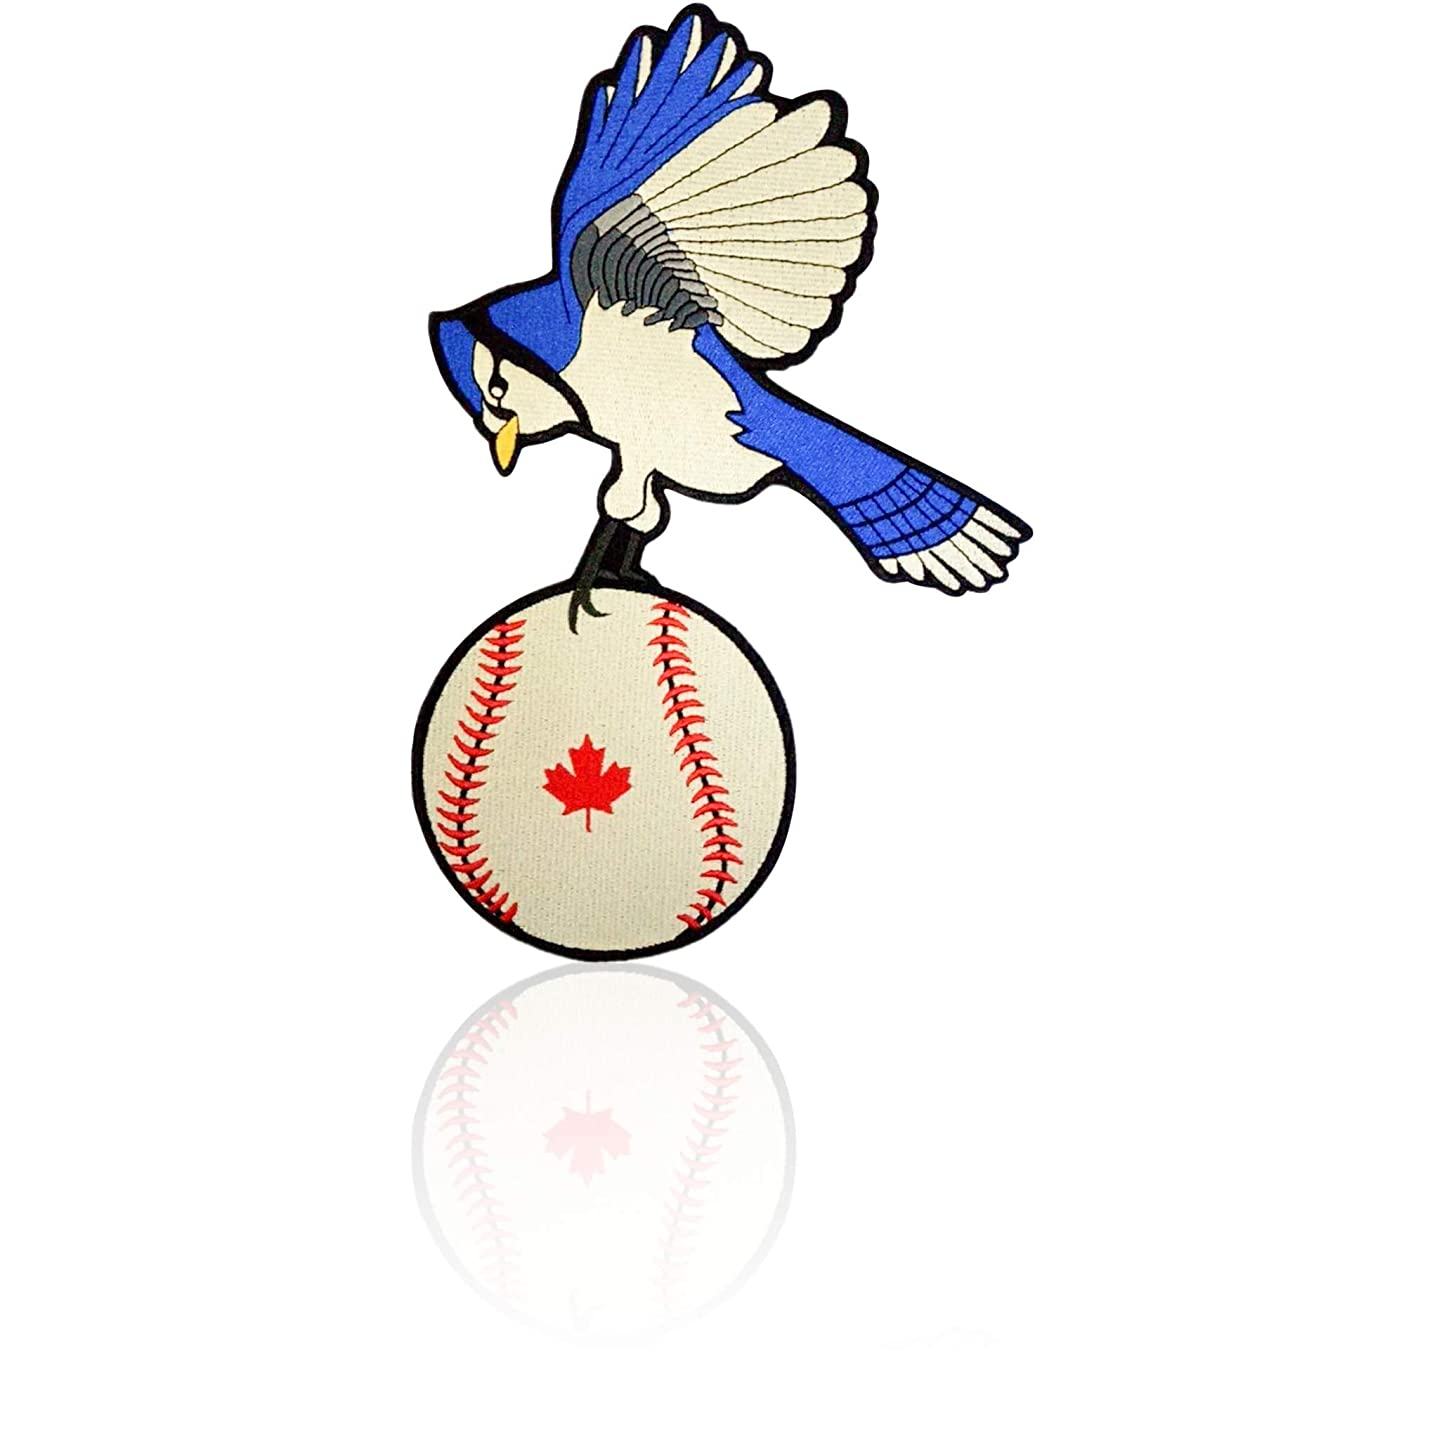 Blue Jay Back Patch Iron on & Sew on Toronto Baseball Embroidered Applique Decoration DIY Craft for Tshirts, Denim Jackets, Hats, Bags